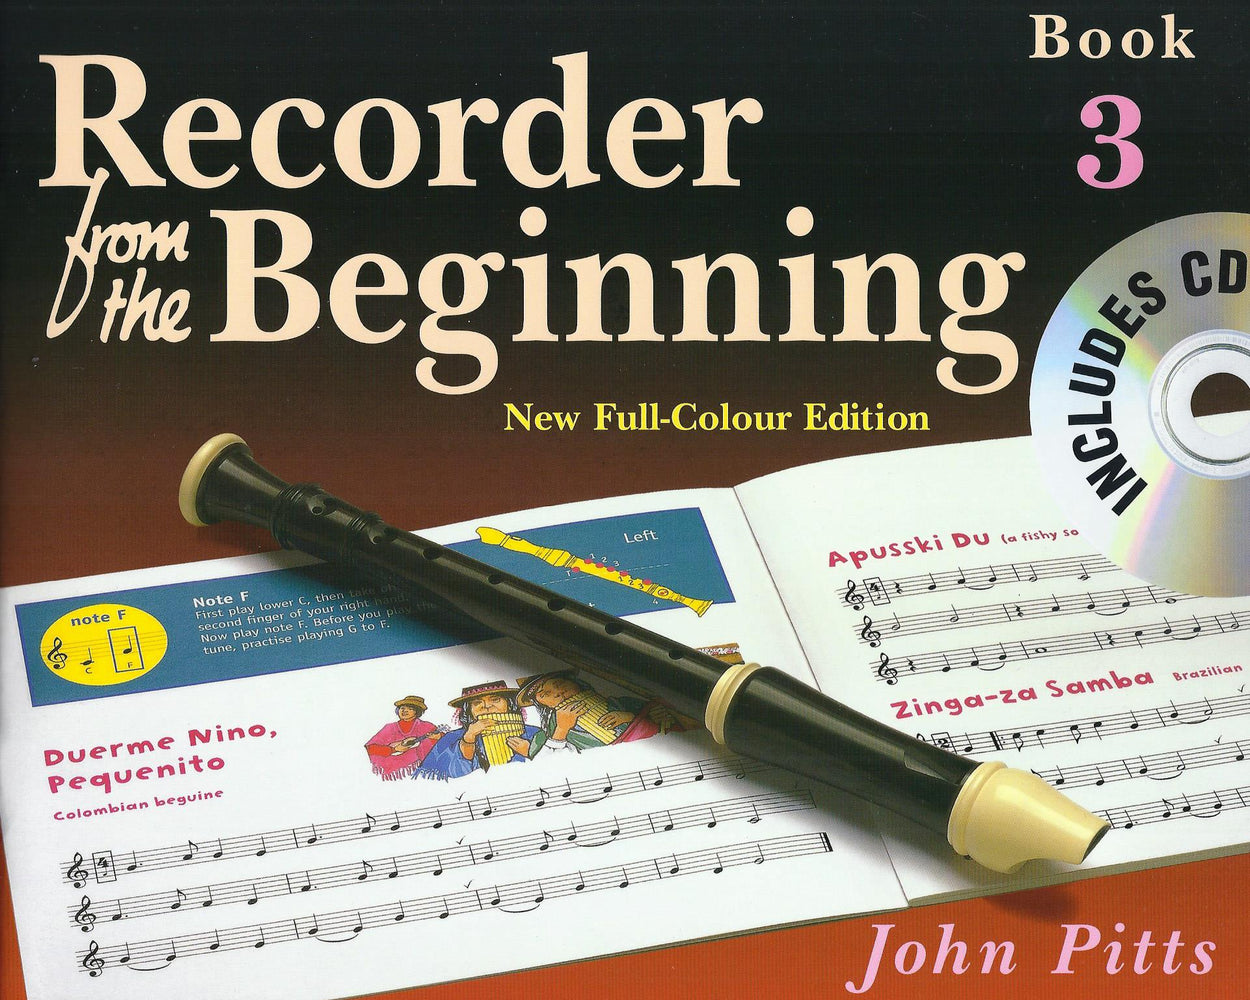 Pitts: Recorder from the Beginning Book 3 - New Full-Colour Edition with CD